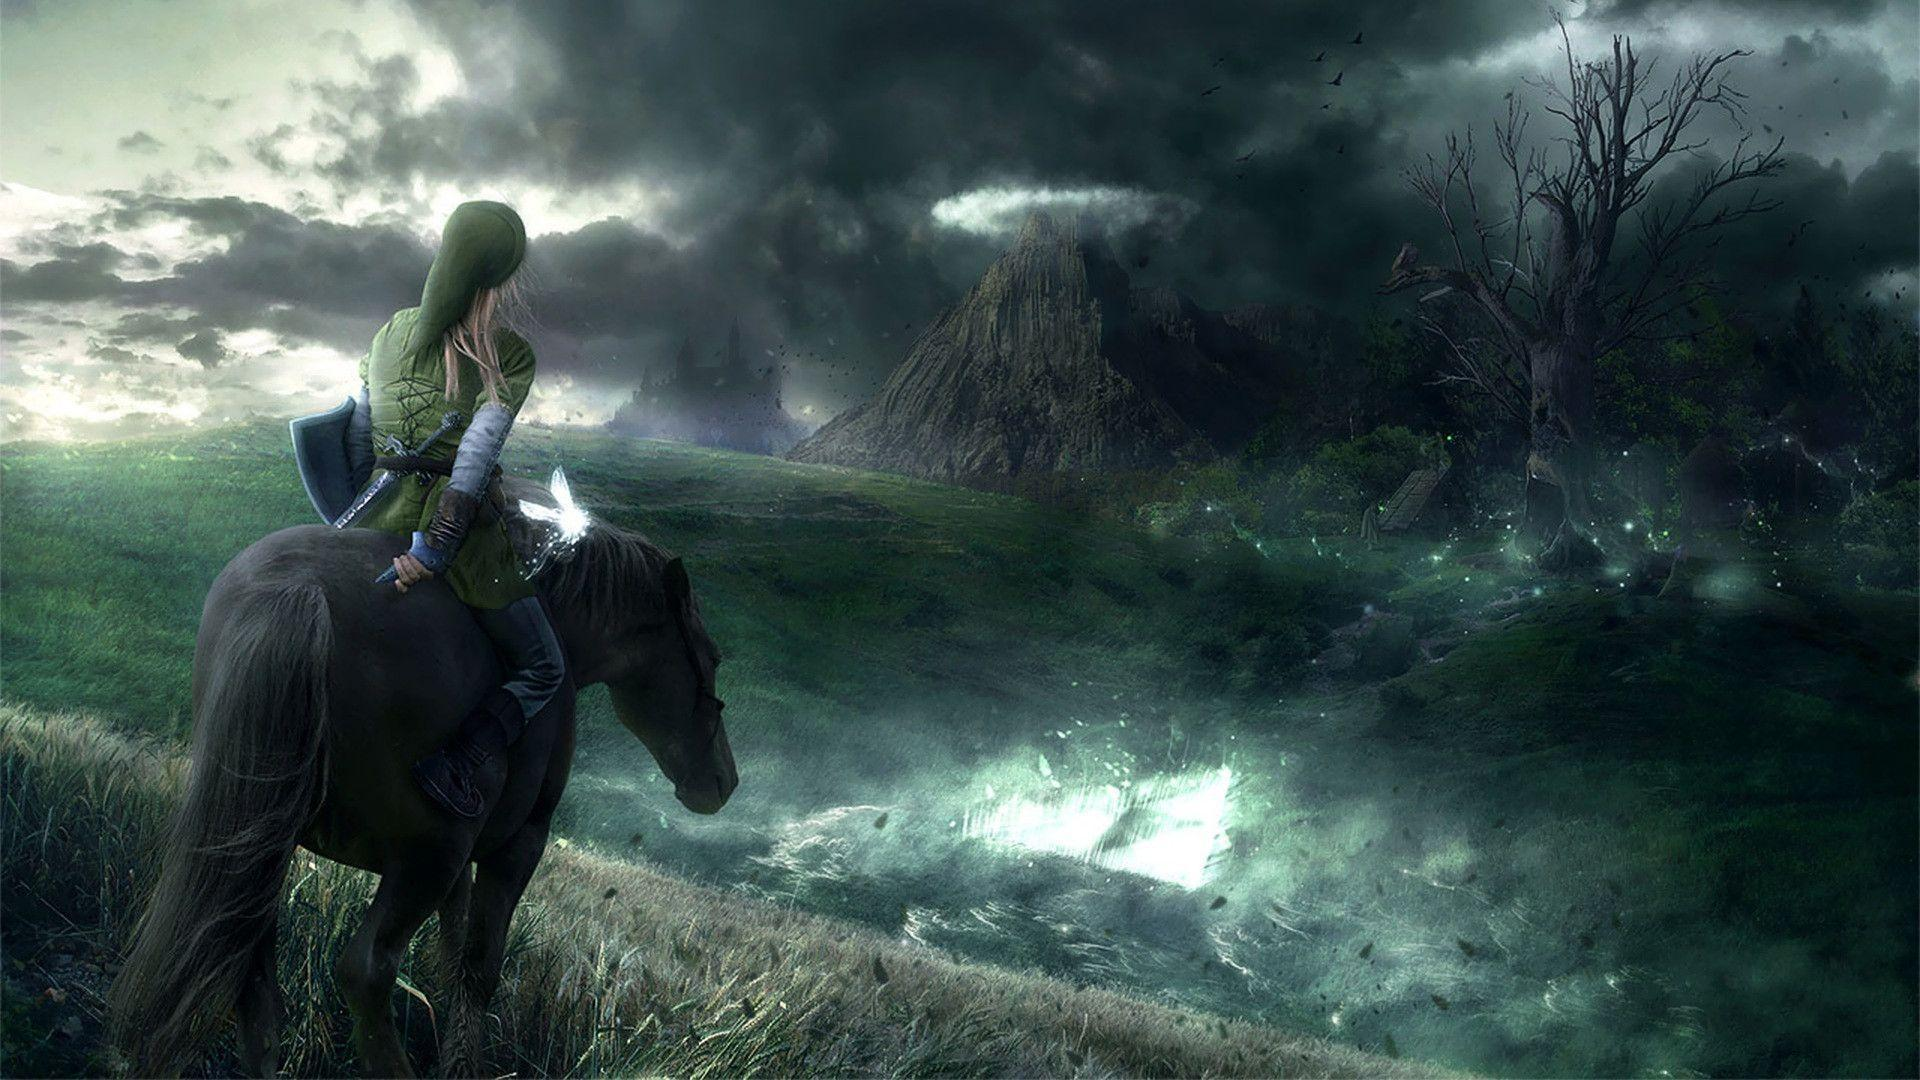 hd zelda wallpapers - photo #22